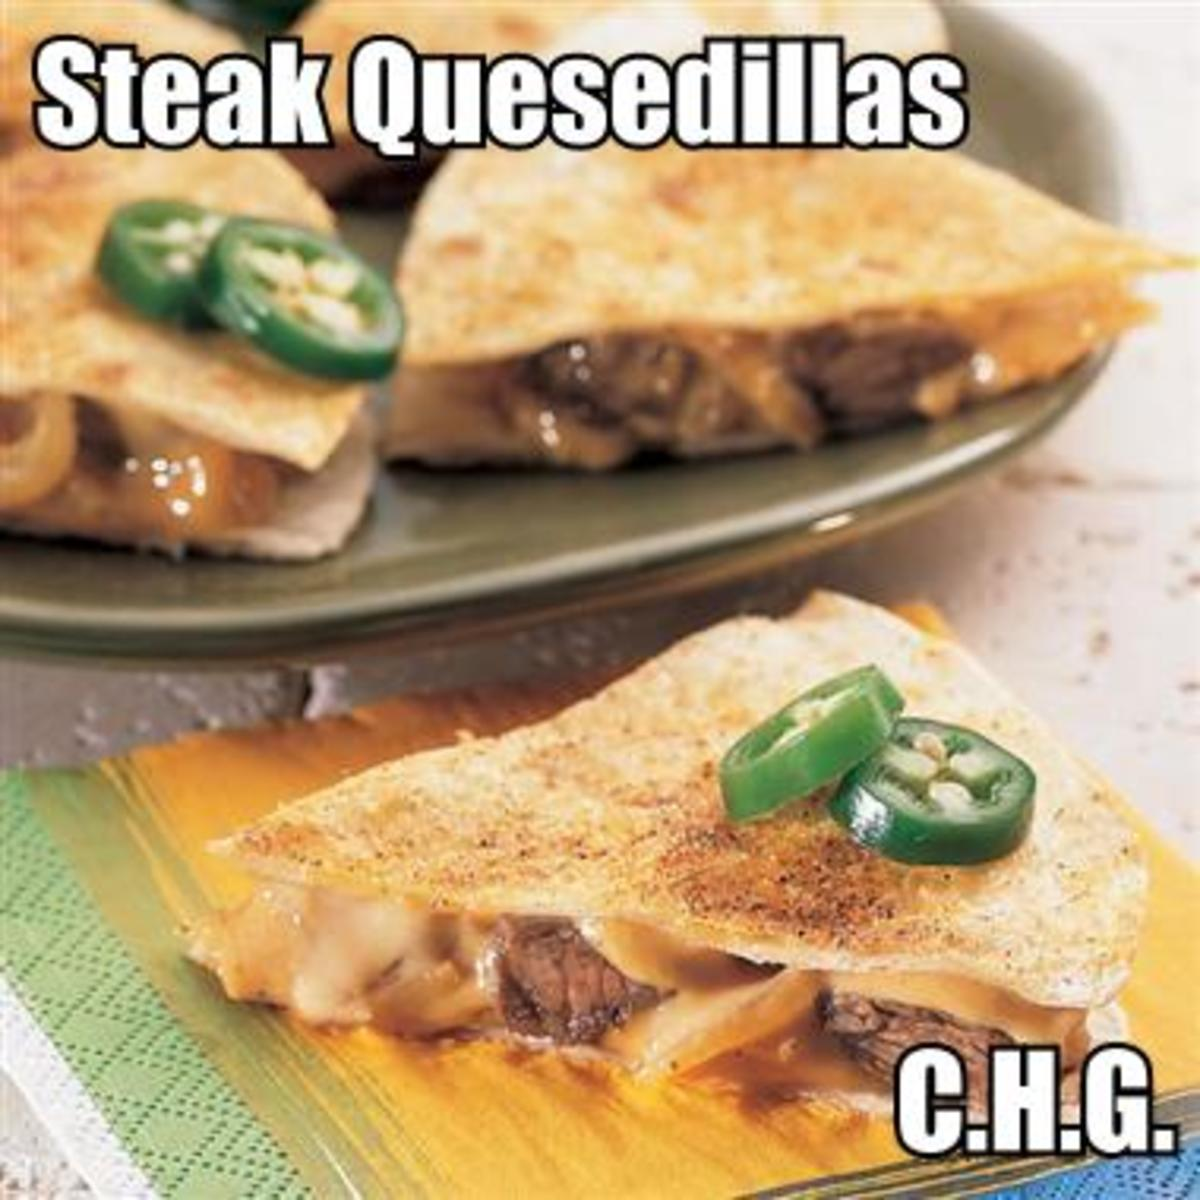 Here's a recipe for the most delicious steak quesadillas you will ever eat.